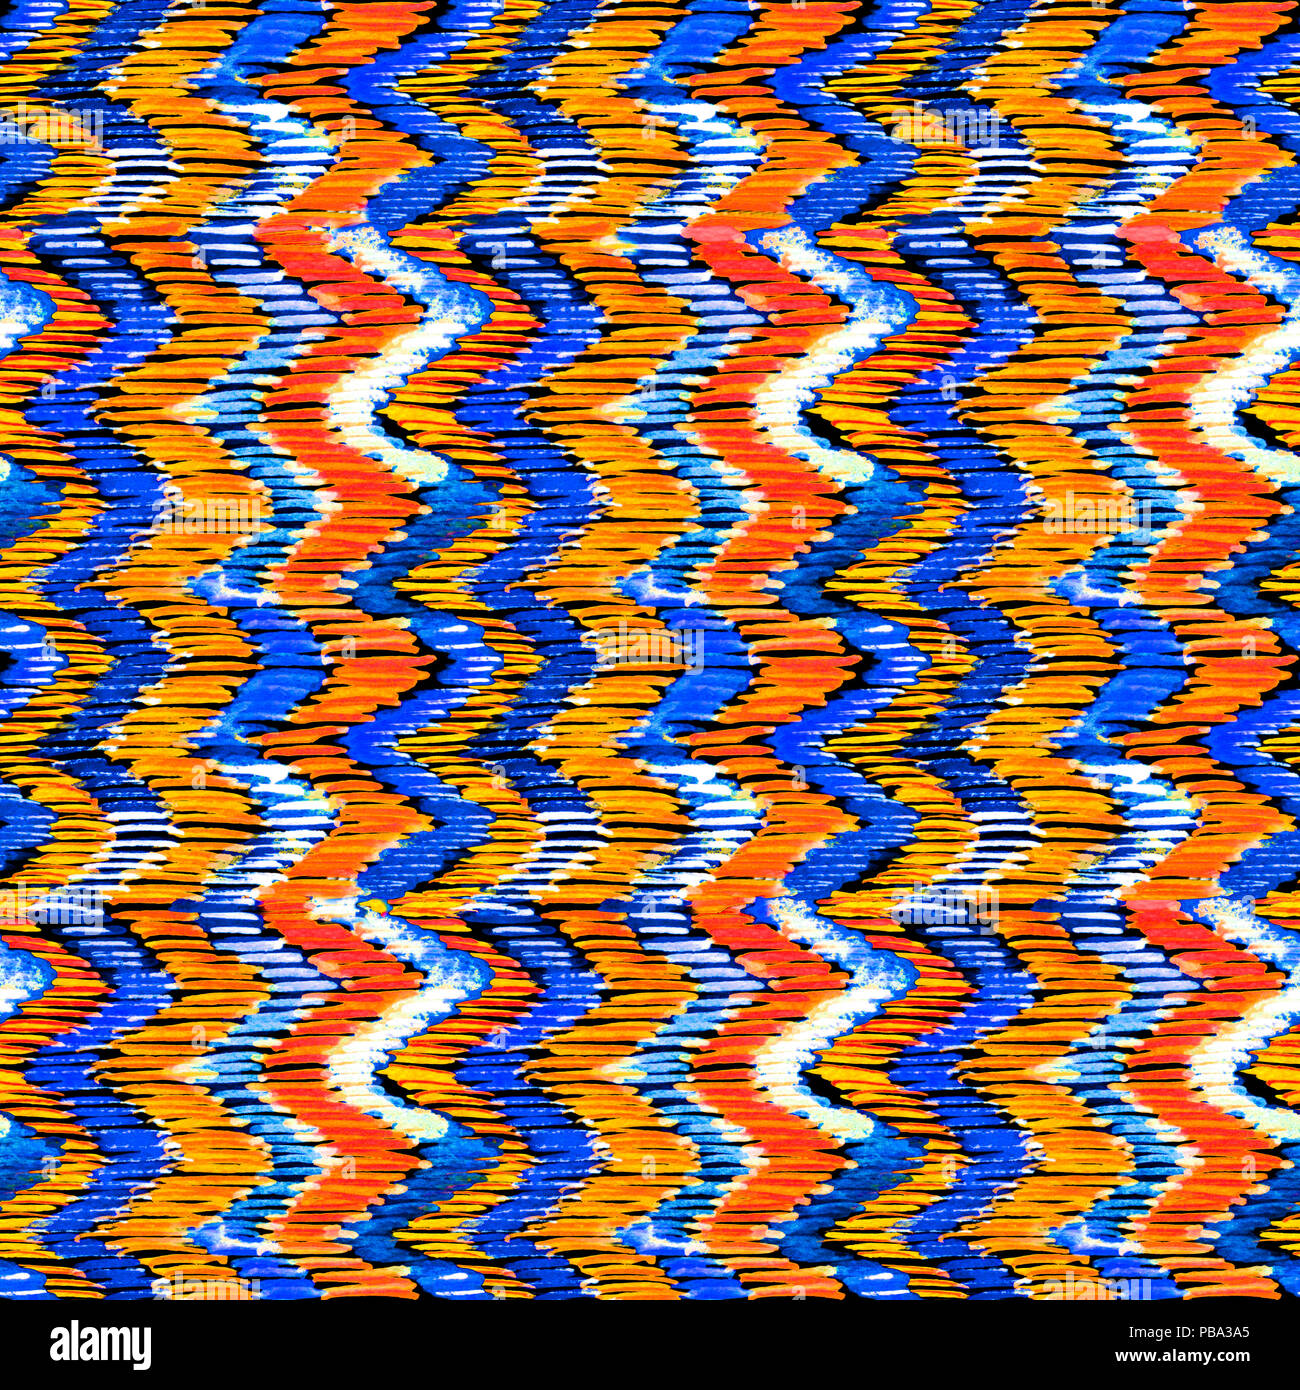 orange blue chevron pattern stock photos orange blue chevron pattern stock images alamy. Black Bedroom Furniture Sets. Home Design Ideas